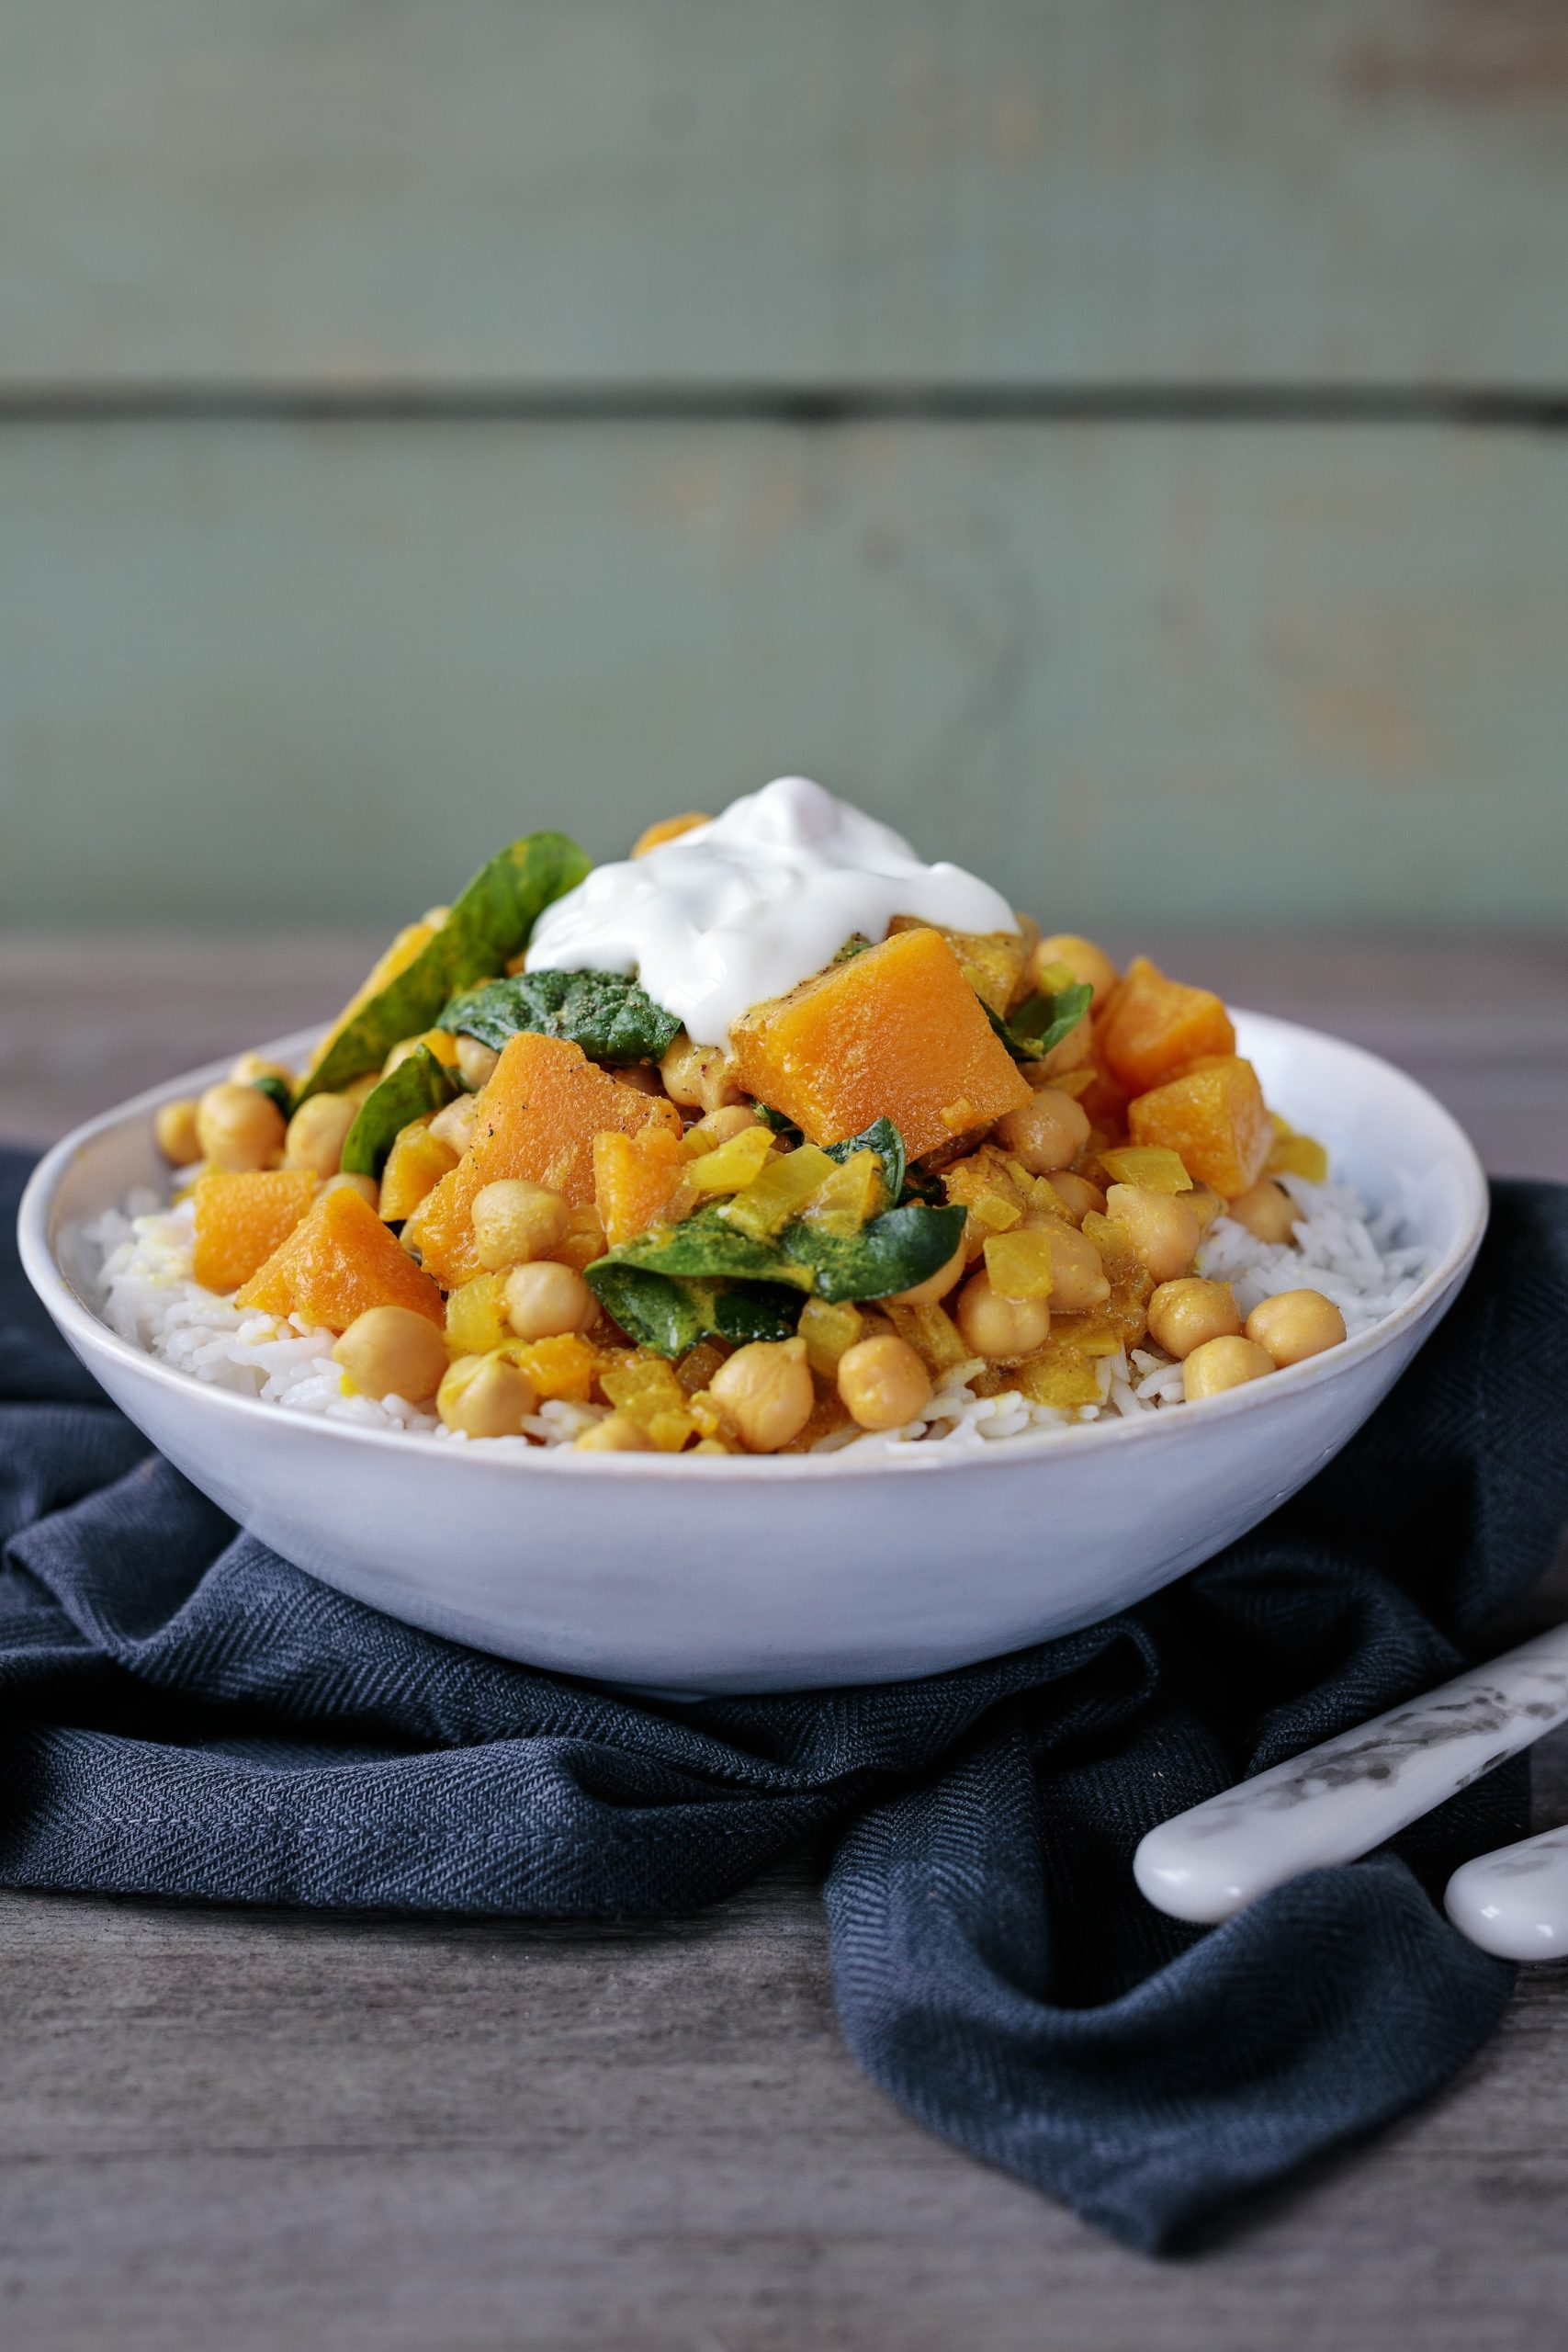 Glenisk's Chickpea Spinach Squash Curry Recipe